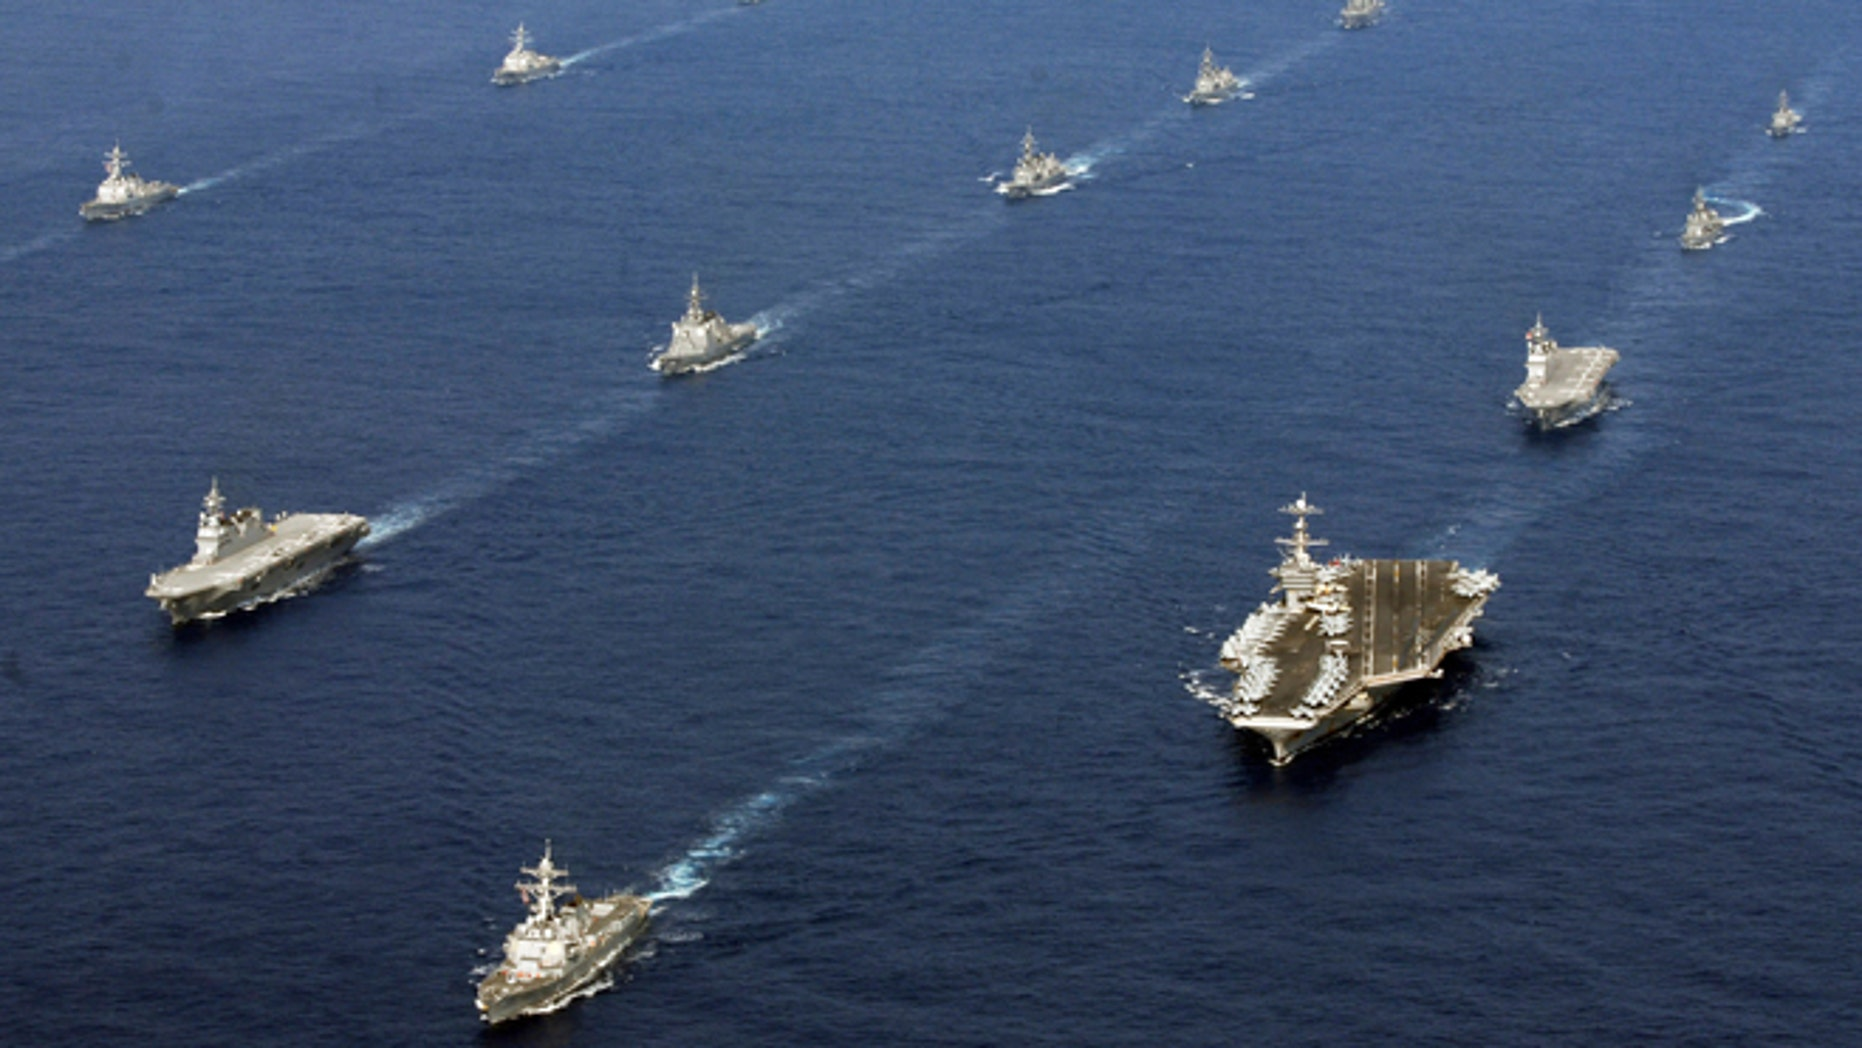 FILE -- Nov. 16, 2012: In this photo taken and released by U.S. Navy, twenty-six ships from the U.S. Navy and the Japan Maritime Self-Defense Force, including USS George Washington, bottom right, steam together in East China Sea after the conclusion of Keen Sword, a biennial naval exercise by the two countries to respond to a crisis in the Asia-Pacific region.